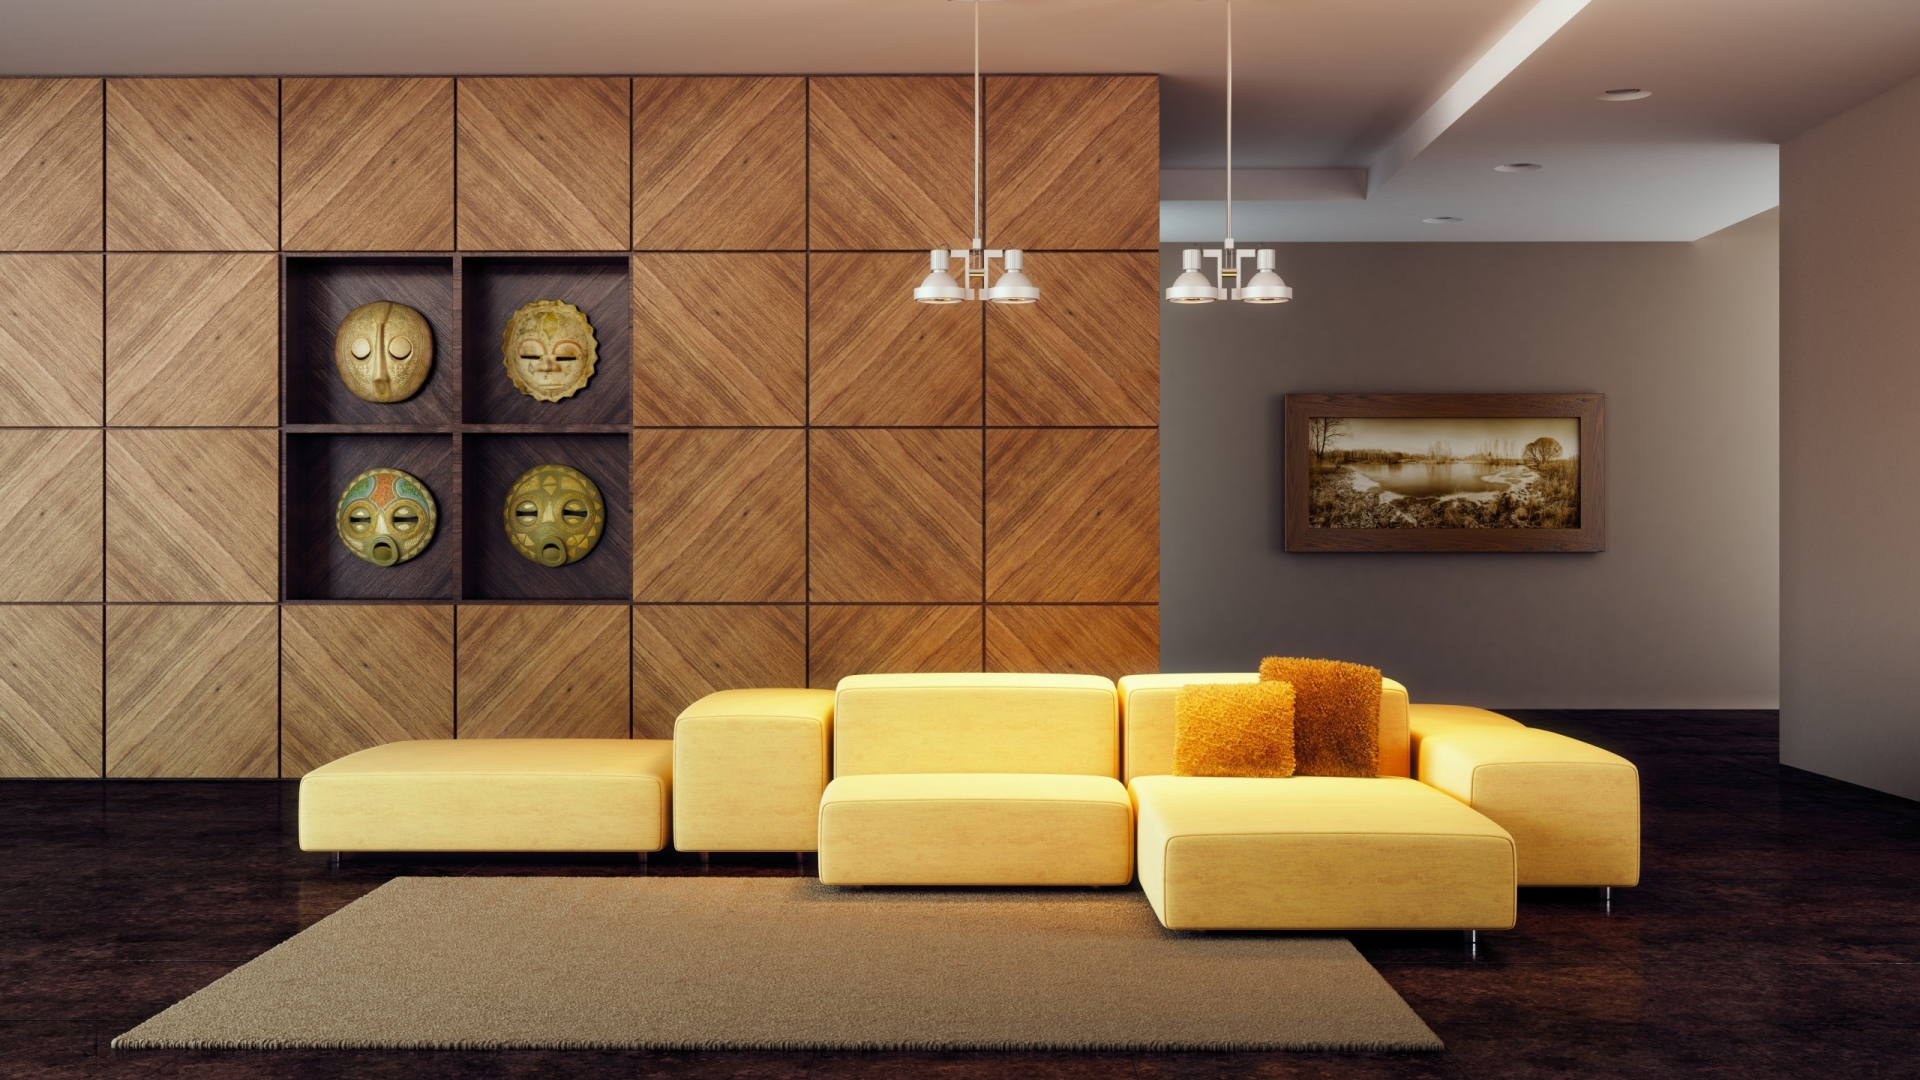 Wallpaper modern living room wallpapers - Best living room wallpaper designs ...